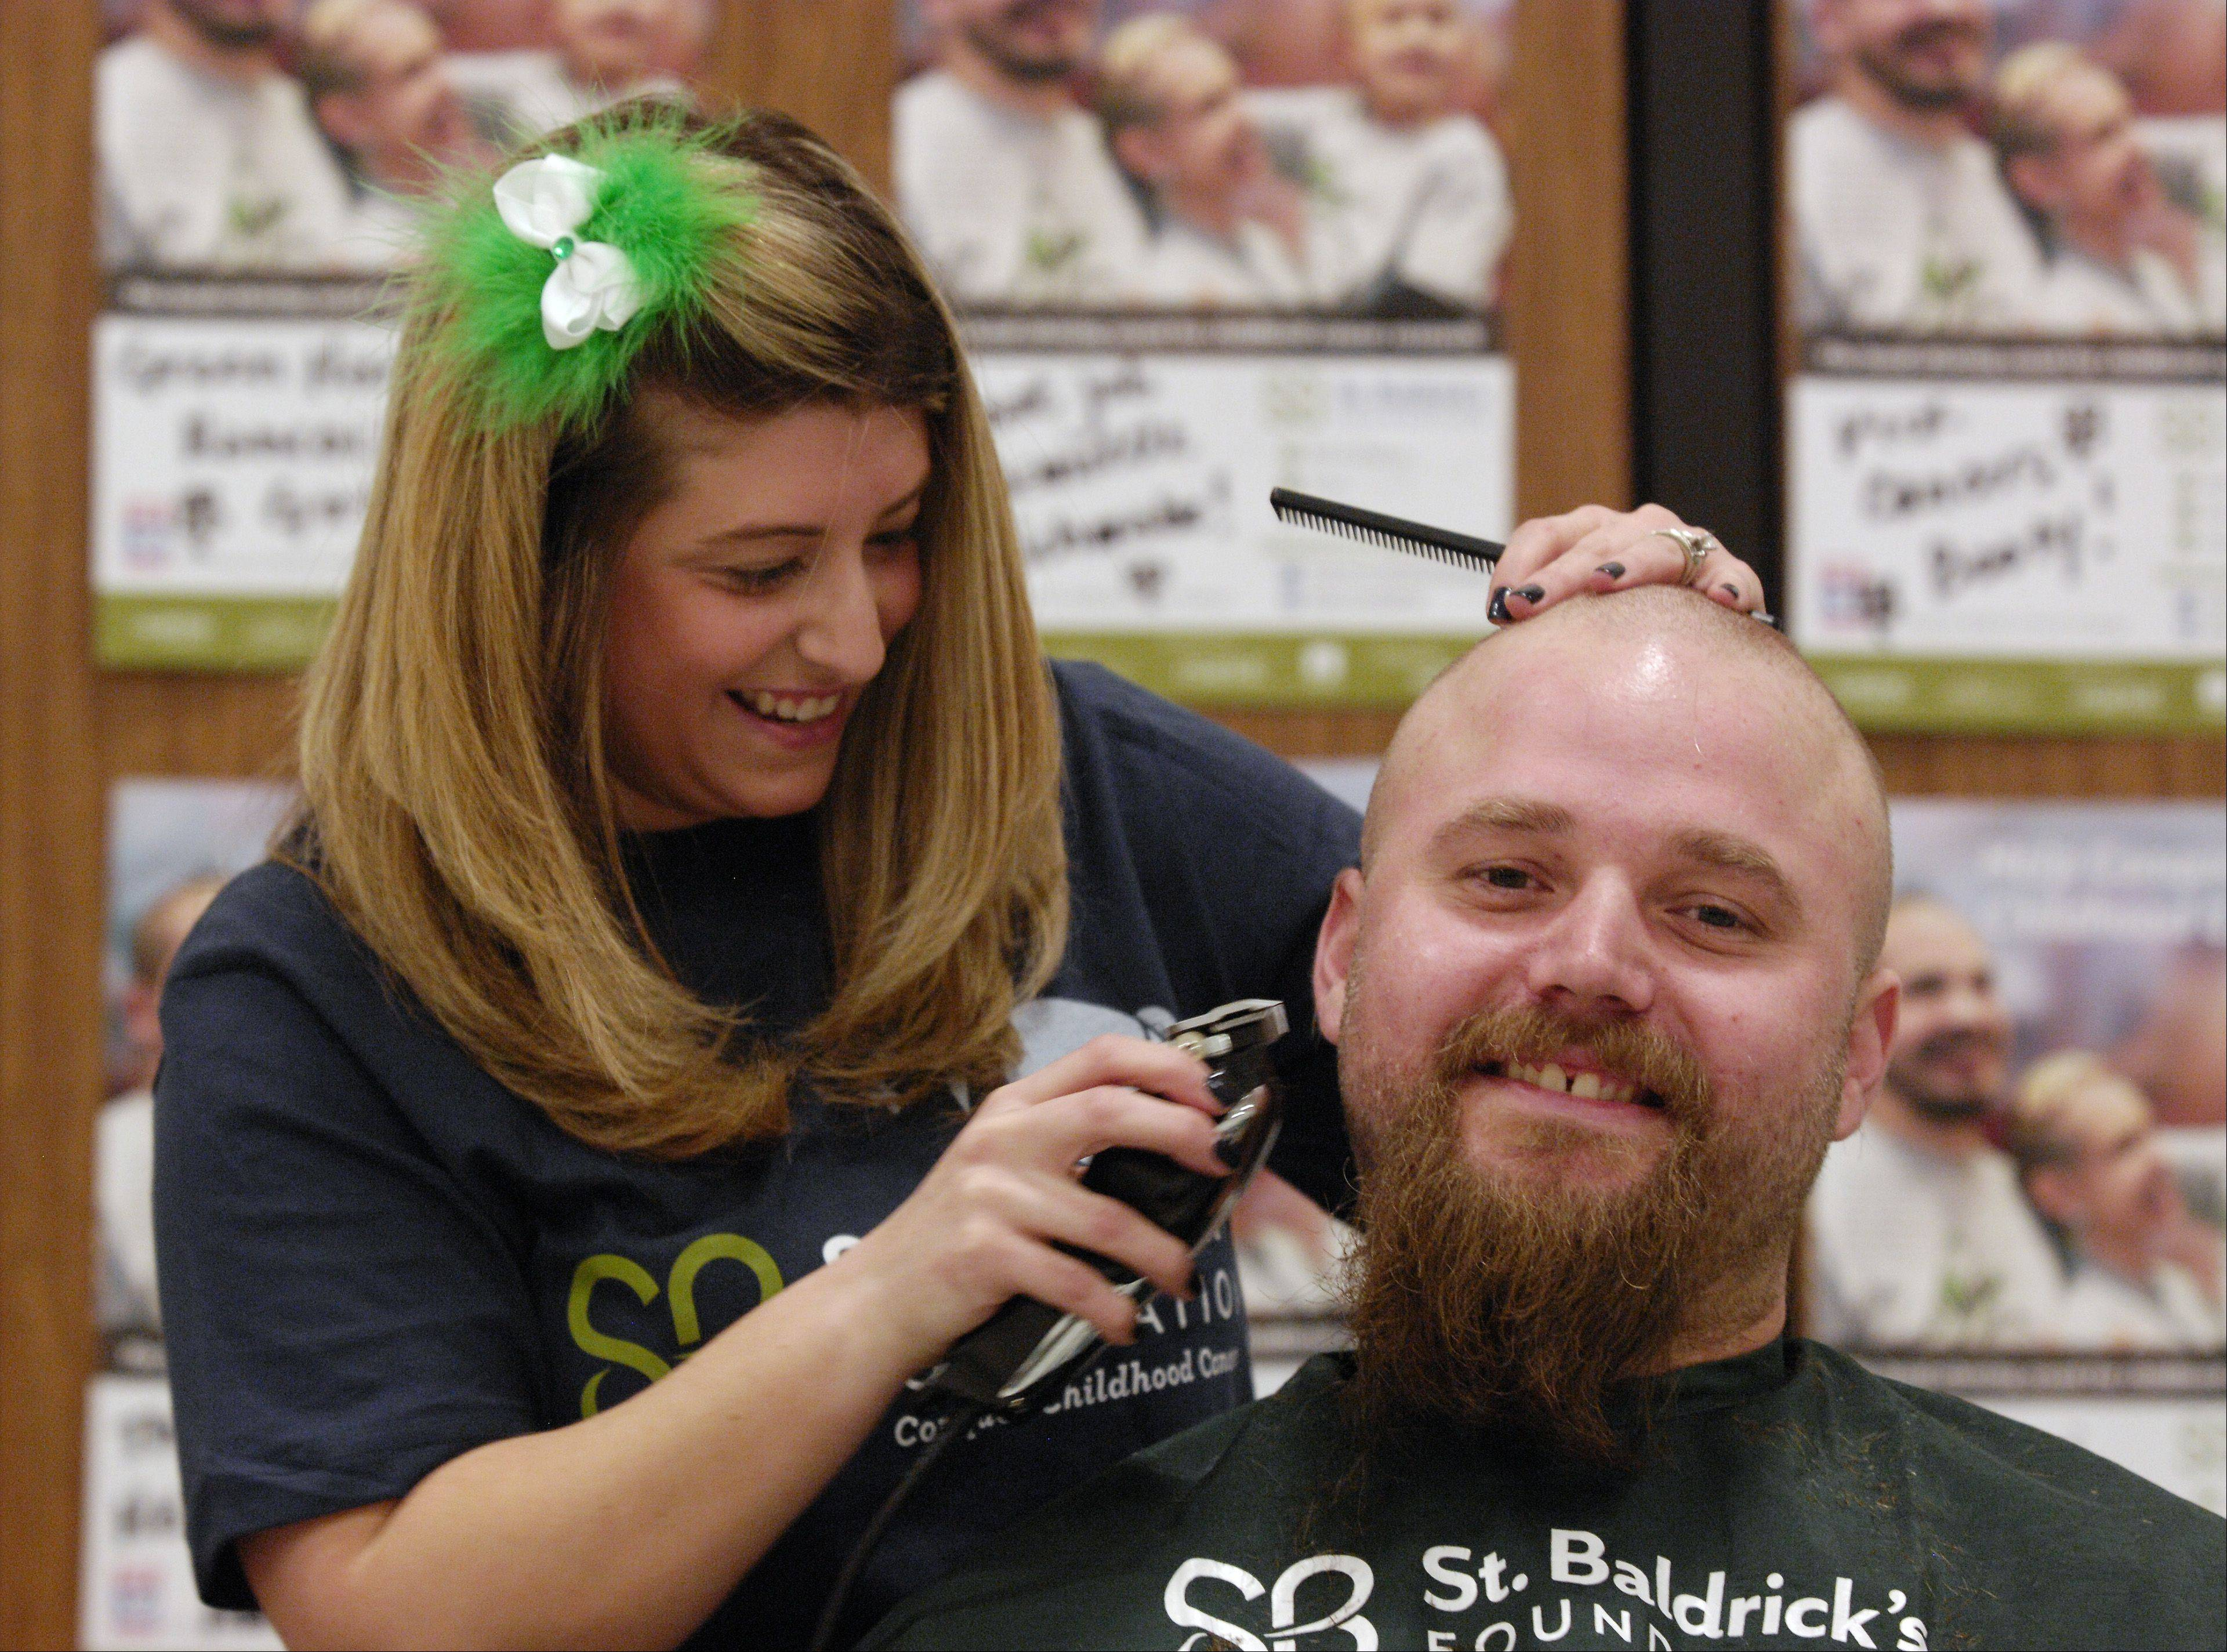 Gina Barzso of Bartlett shaves the head and bread of her husband Dan Barzso during the St. Baldrick's Day shaving event at Evergreen Elementary School in honor of third grader Jack O'Donoghue, who's cancer is now in remission. This is Barzso's first time volunteering to shave heads for a St. Baldrick's Day event.